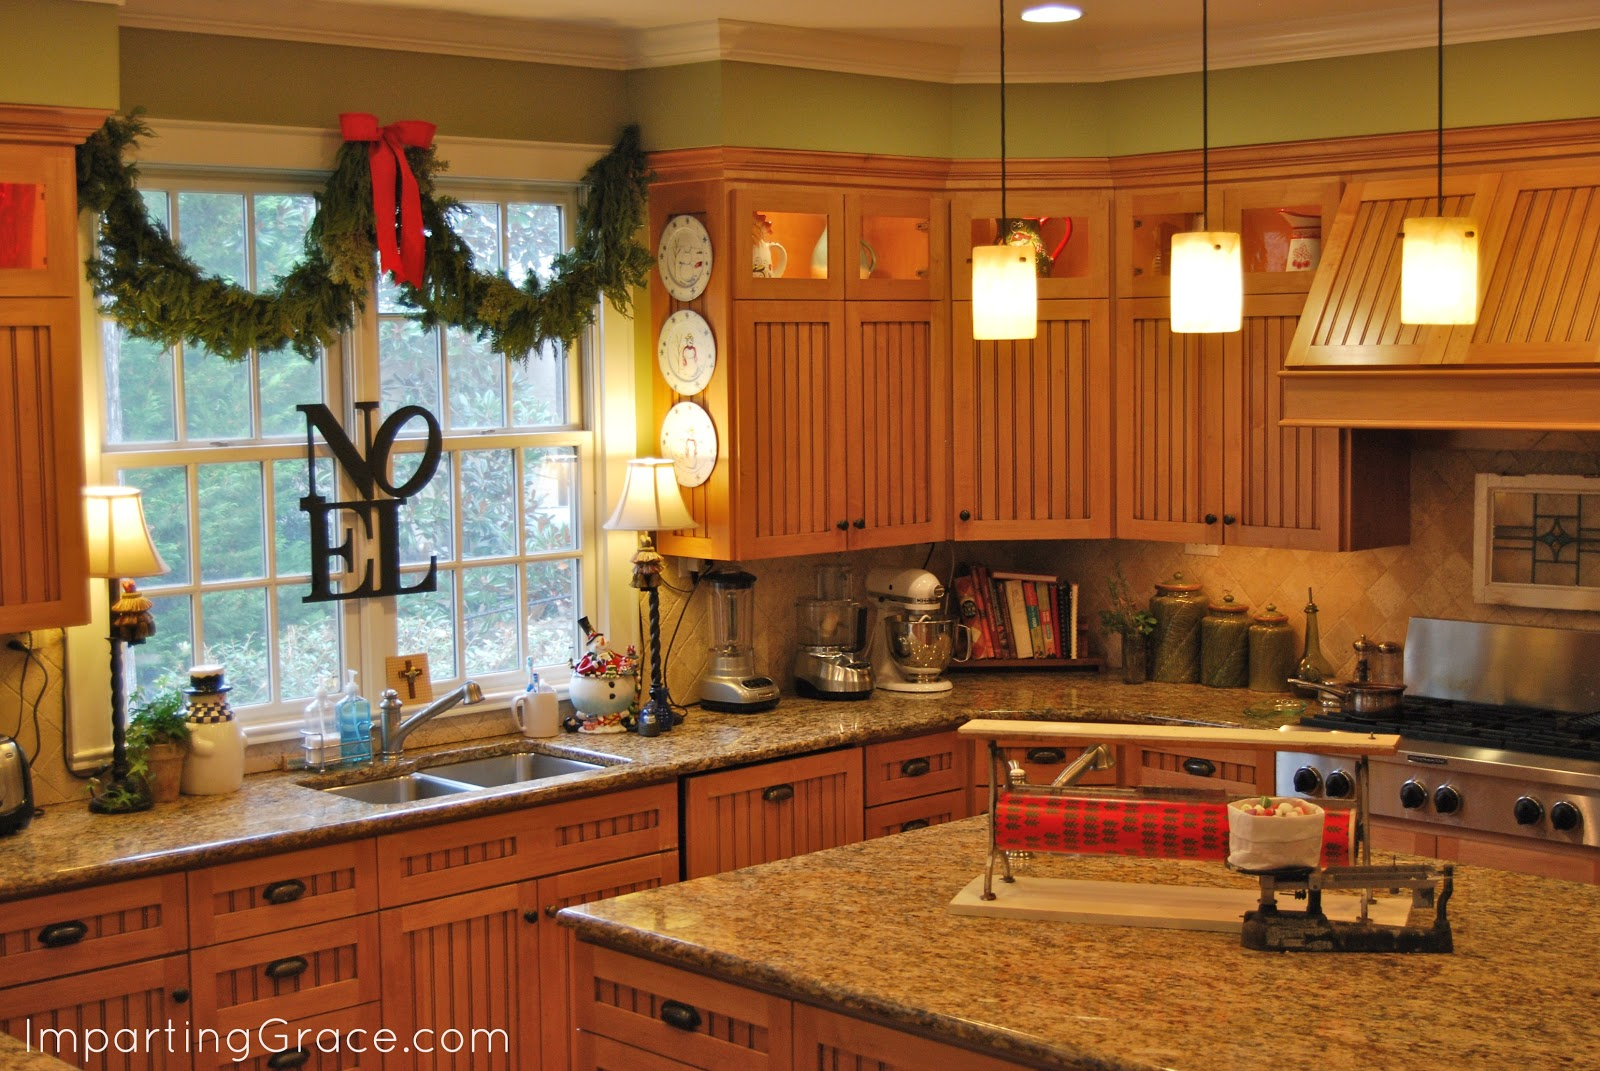 28 kitchen counter decorating ideas pictures 25